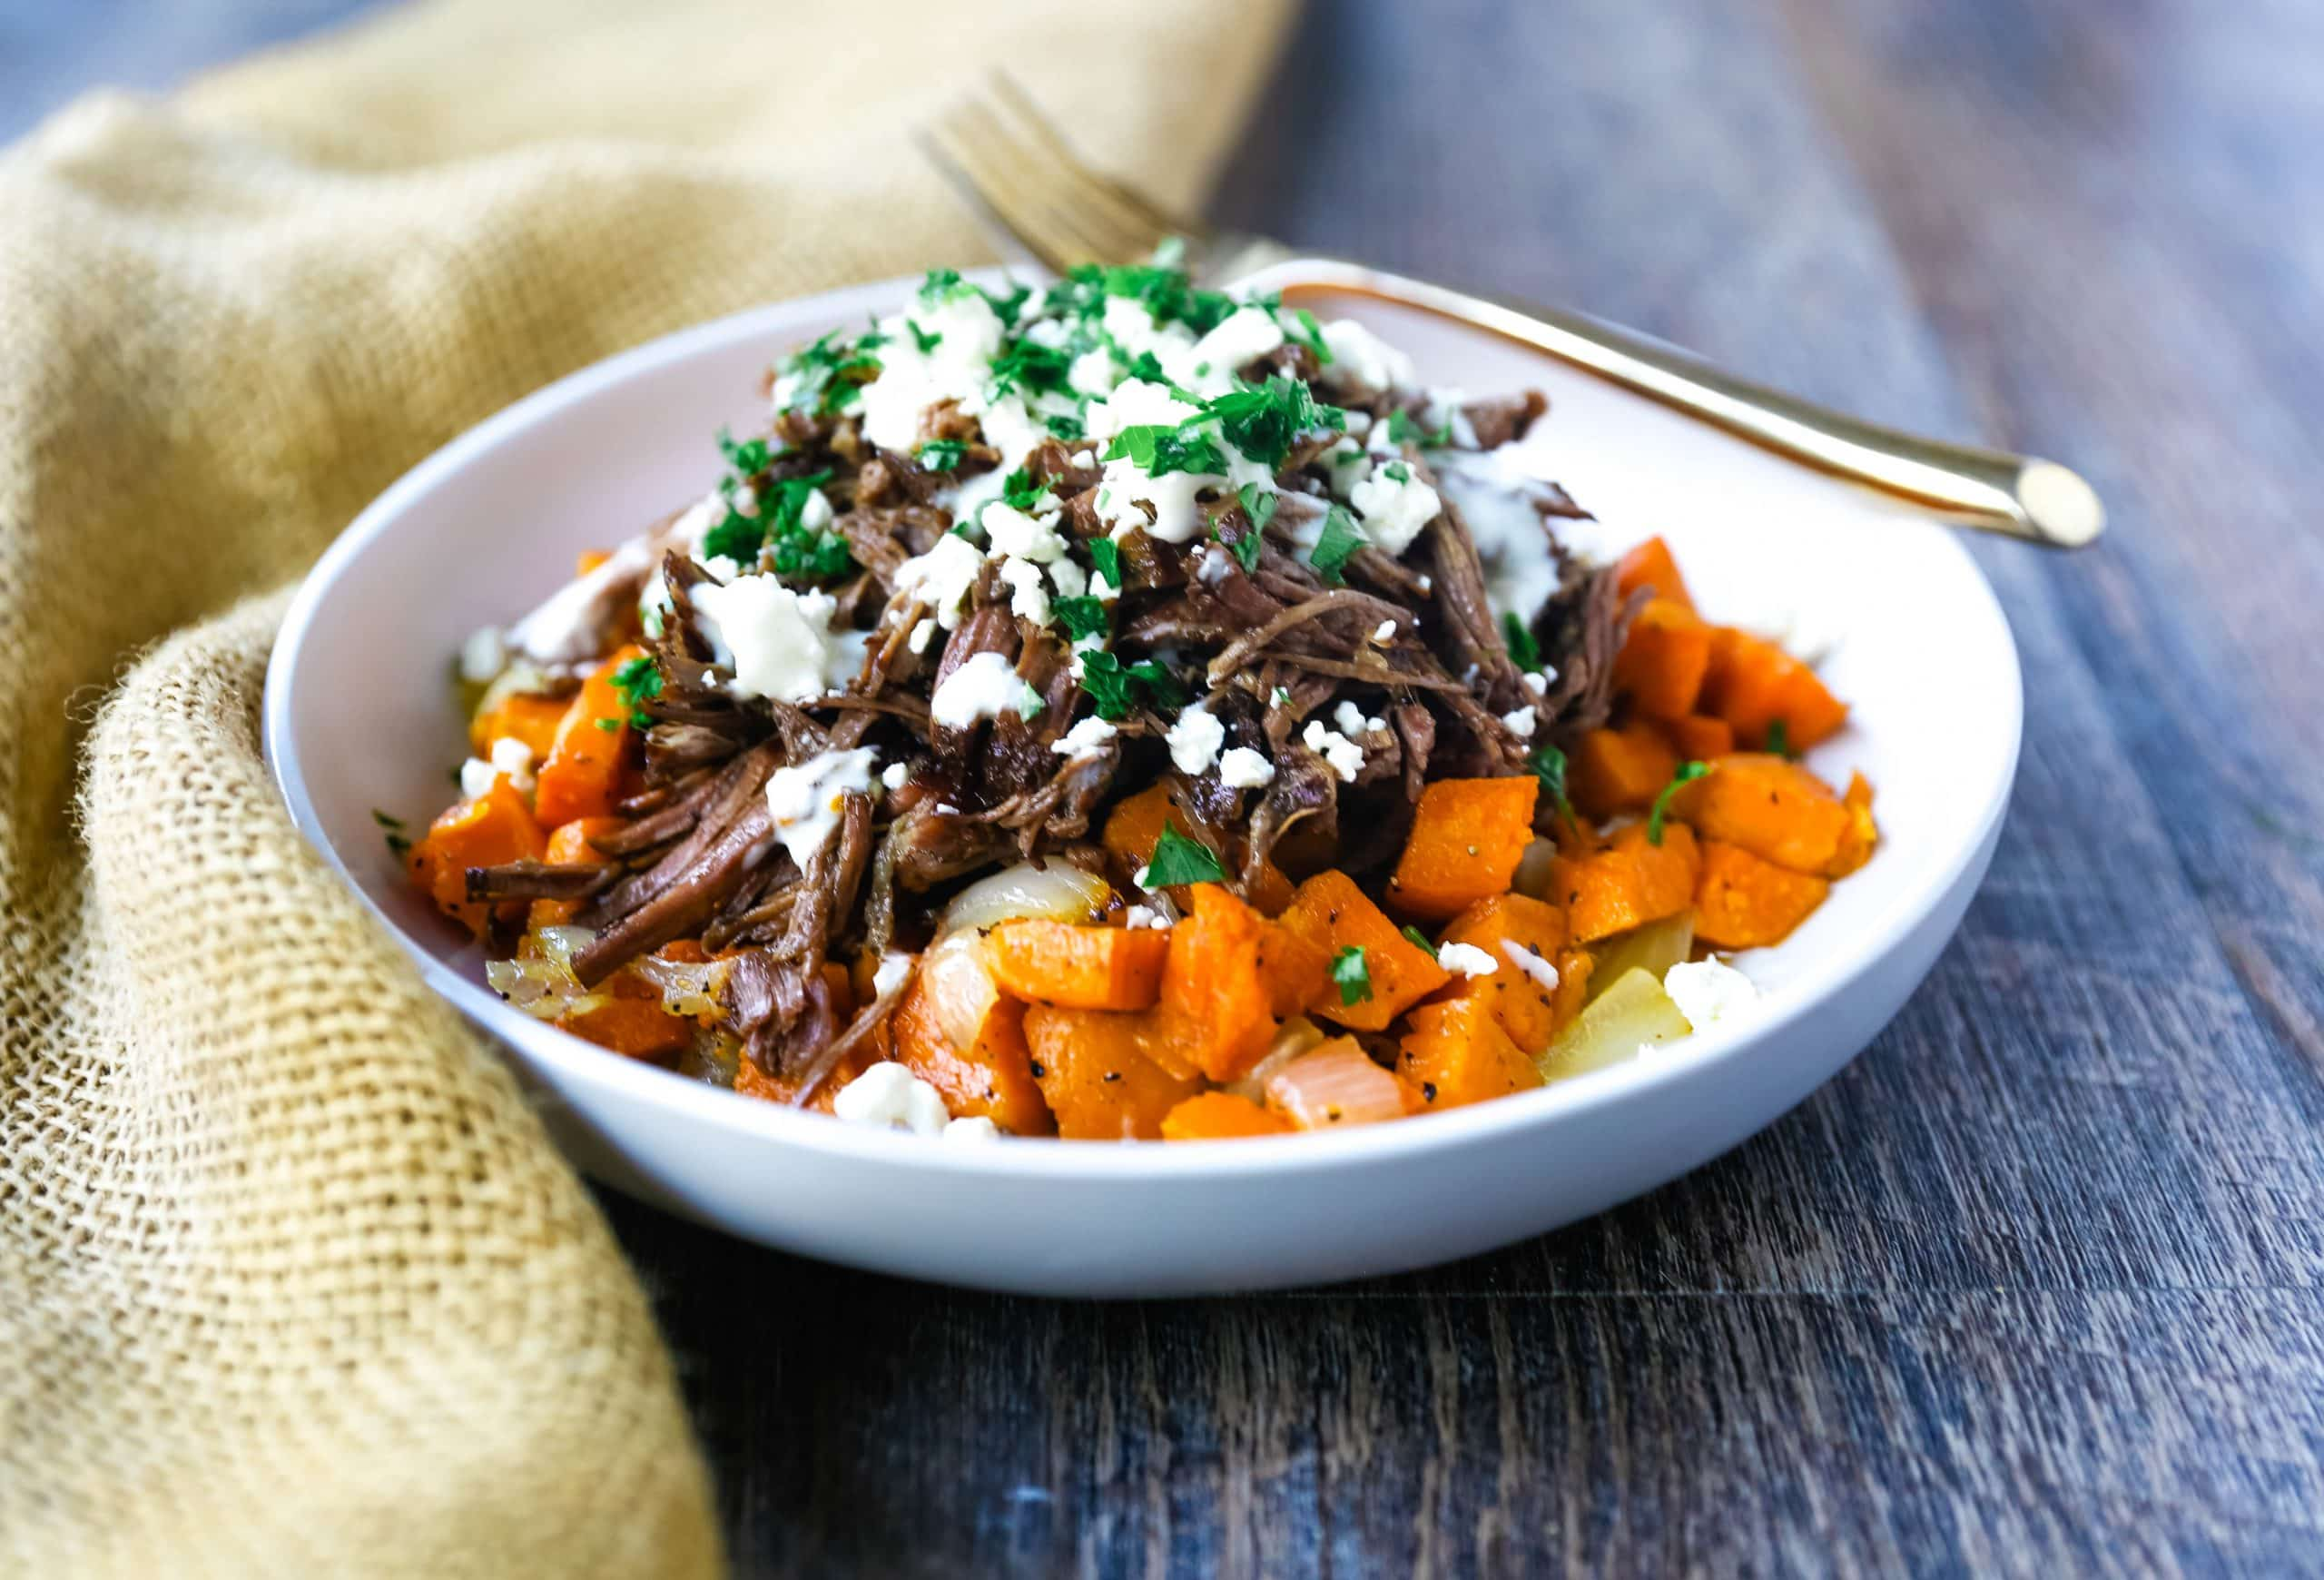 Braised Beef and Sweet Potato Hash Bowl. Tender braised beef on top of a sweet potato onion hash and topped with feta cheese and herbs. www.modernhoney.com #bowl #bowls #dinner